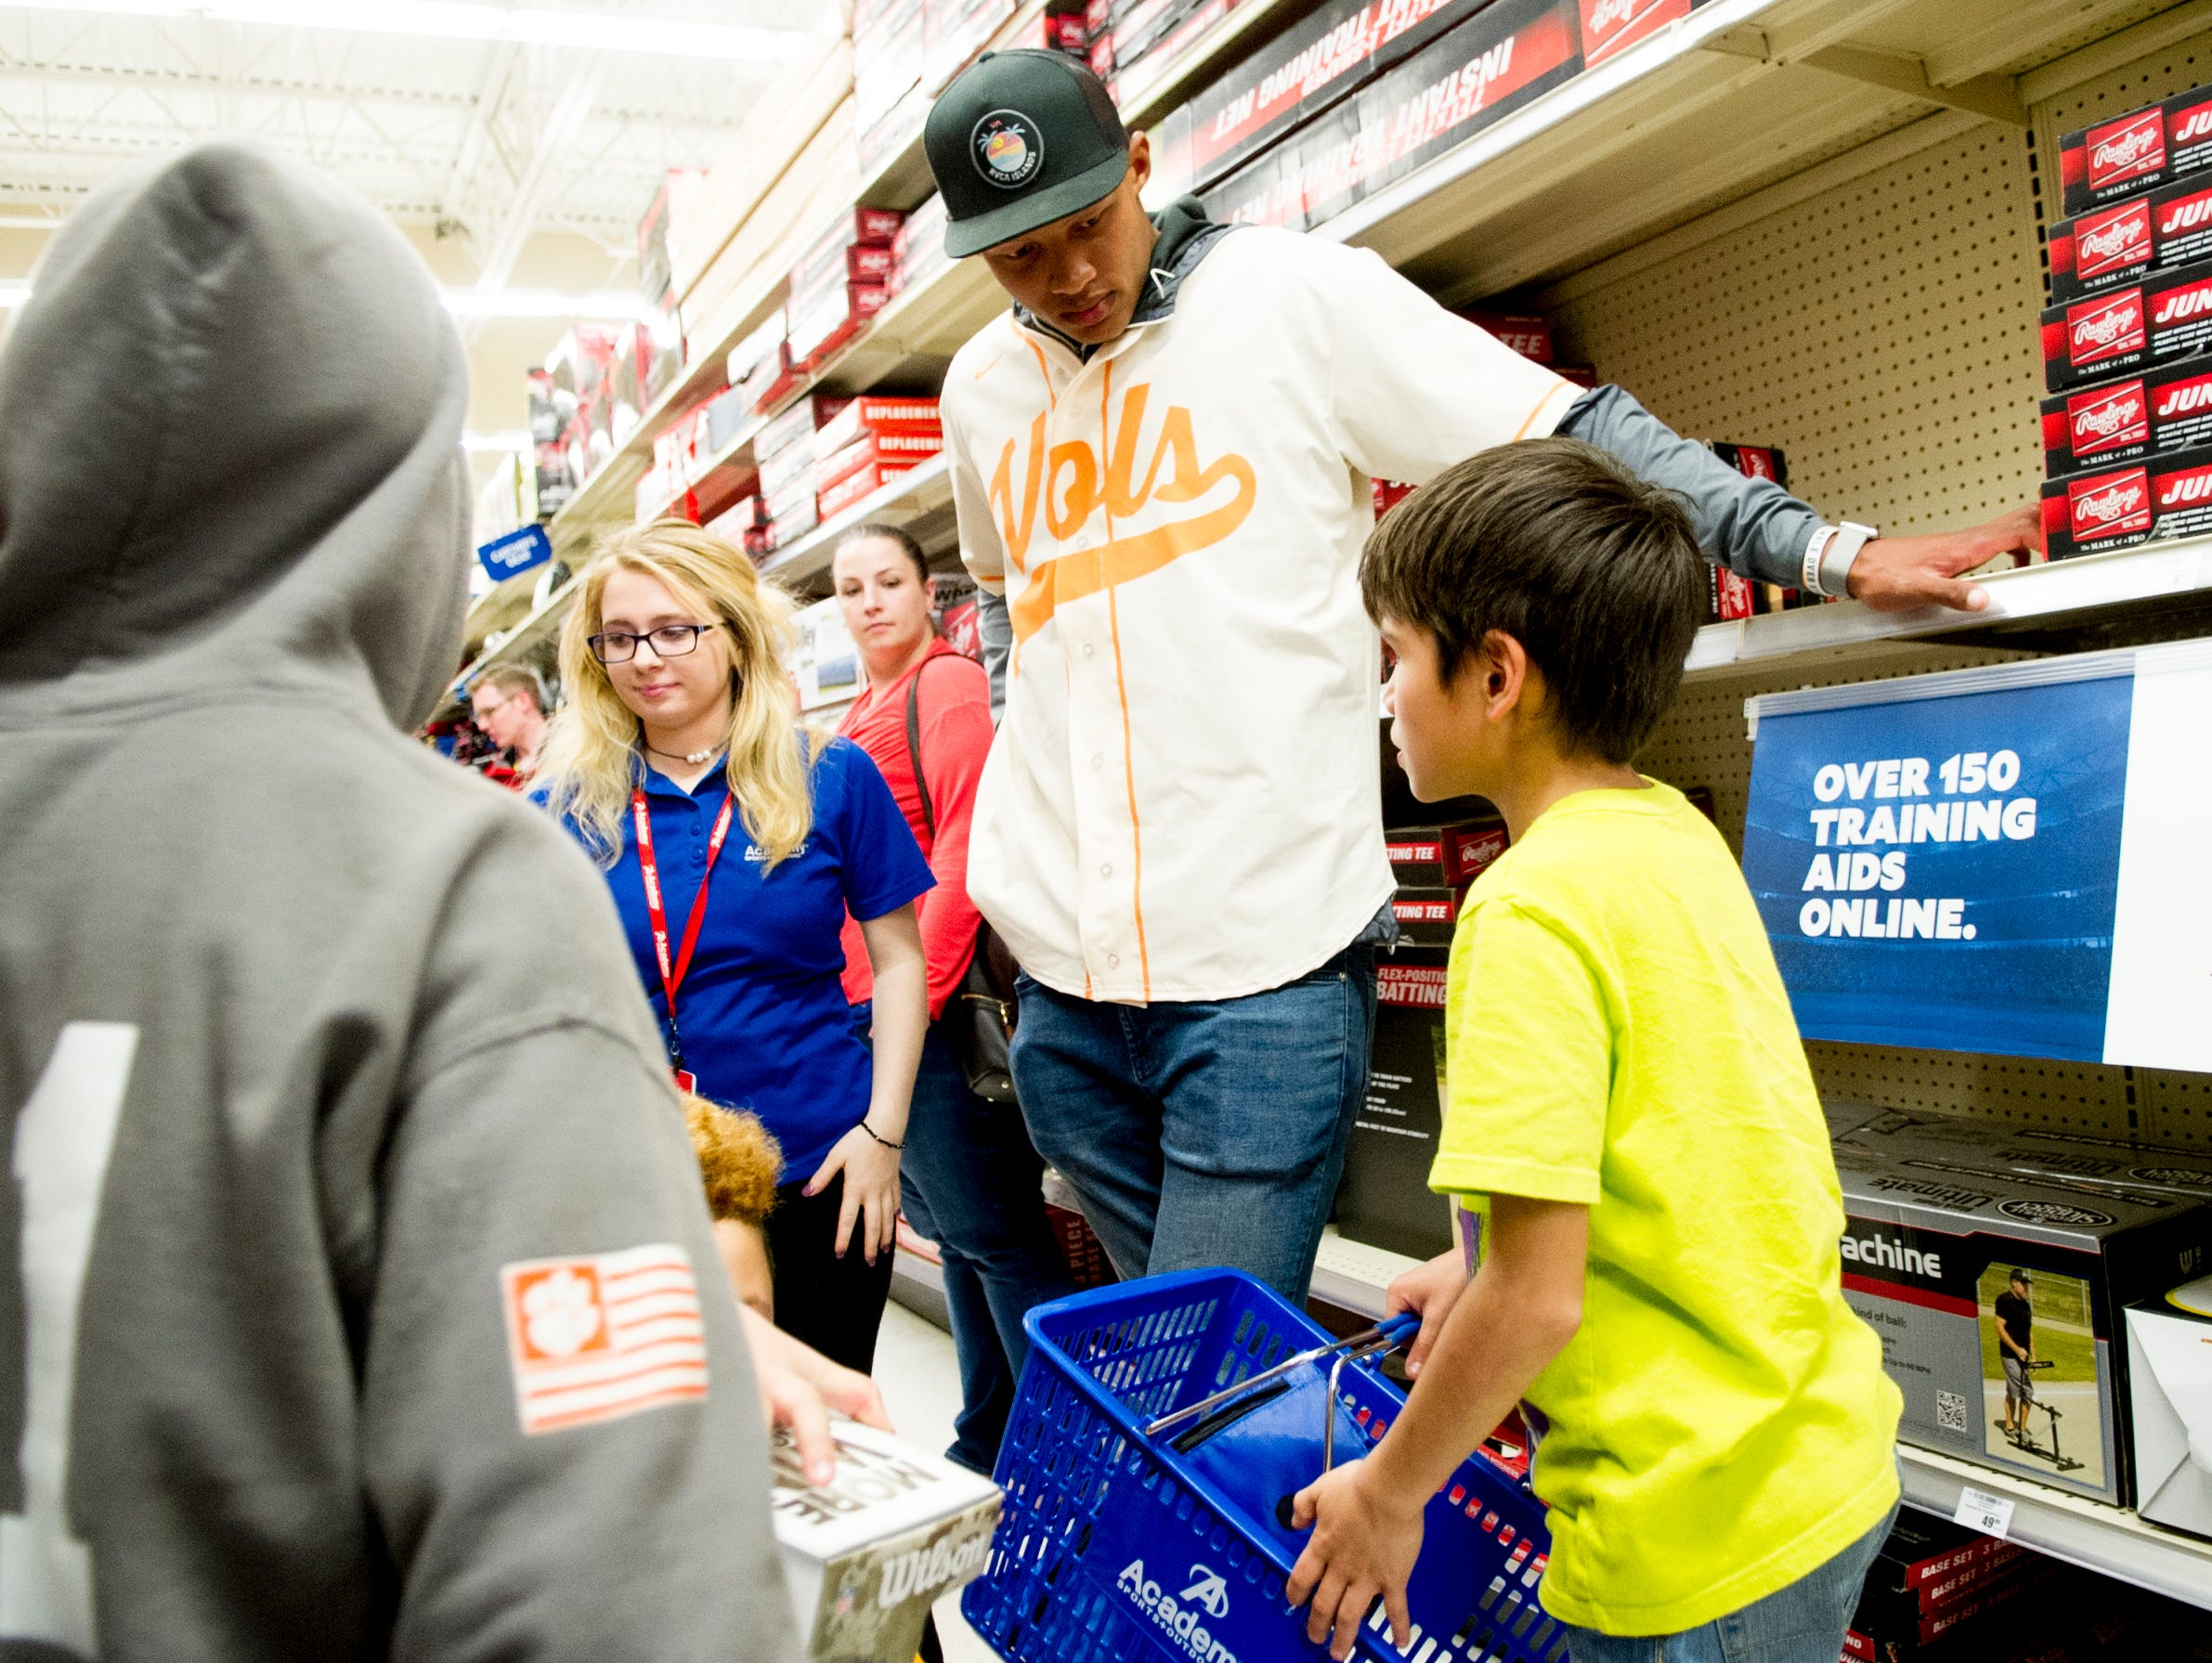 Former UT QB Joshua Dobbs helps kids pick football gear during a football sporting goods shopping spree at Academy Sports + Outdoors in Knoxville, Tennessee on Friday, March 31, 2017. Dobbs held a shopping spree for 11 area kids who are participating in his football camp.